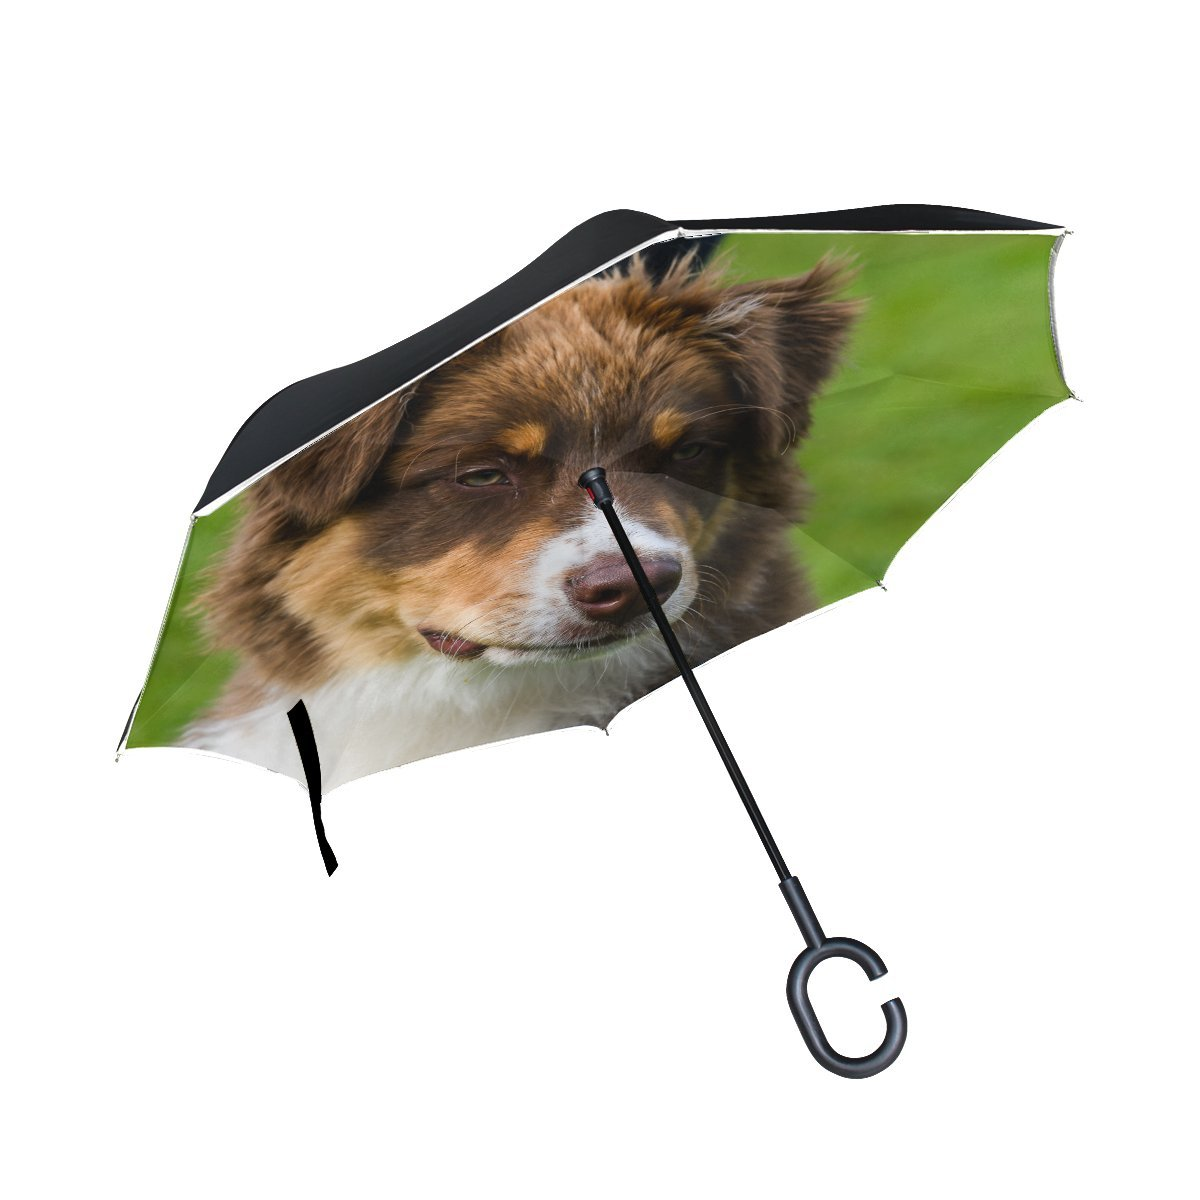 JOCHUAN Animal Dog Affenpinscher Brown Mix Fluffy Small Puppy Pet Inverted Umbrella Large Double Layer Outdoor Rain Sun Car Reversible Umbrella